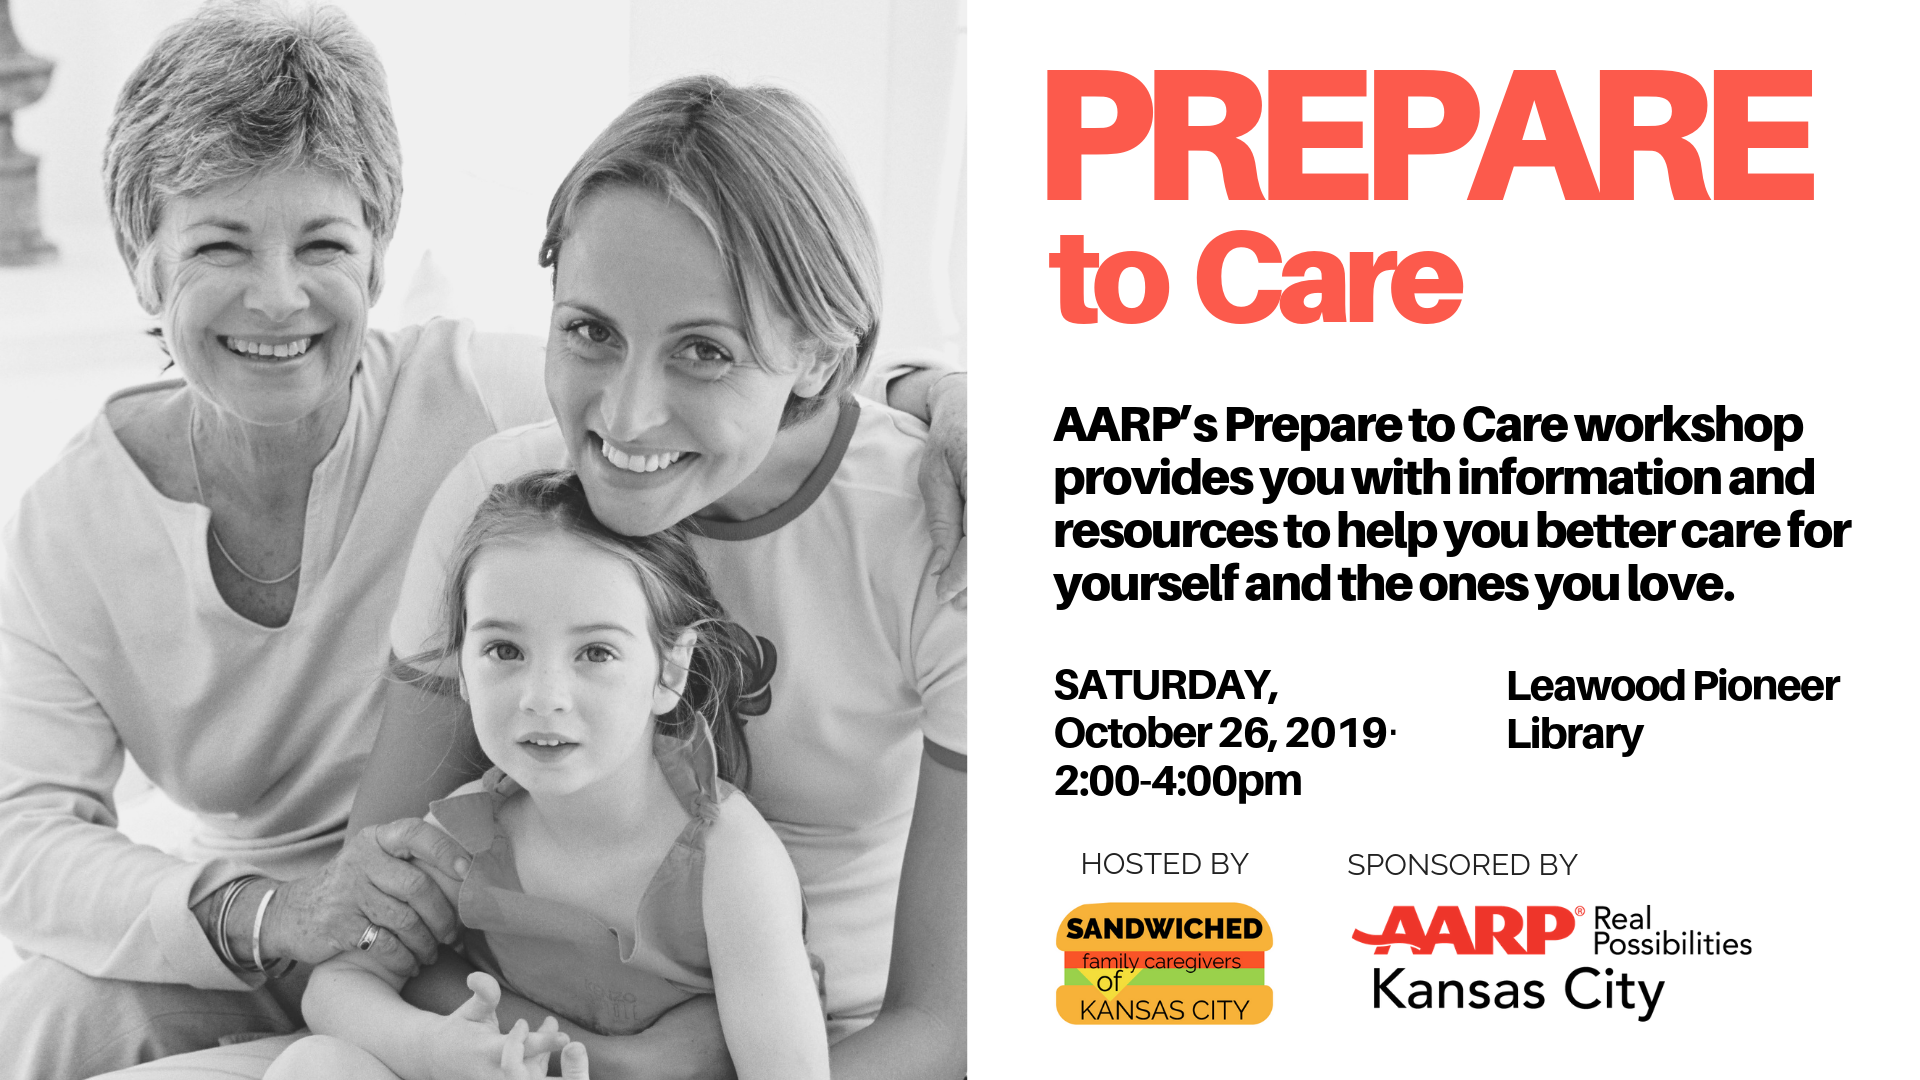 Prepare to Care - Leawood